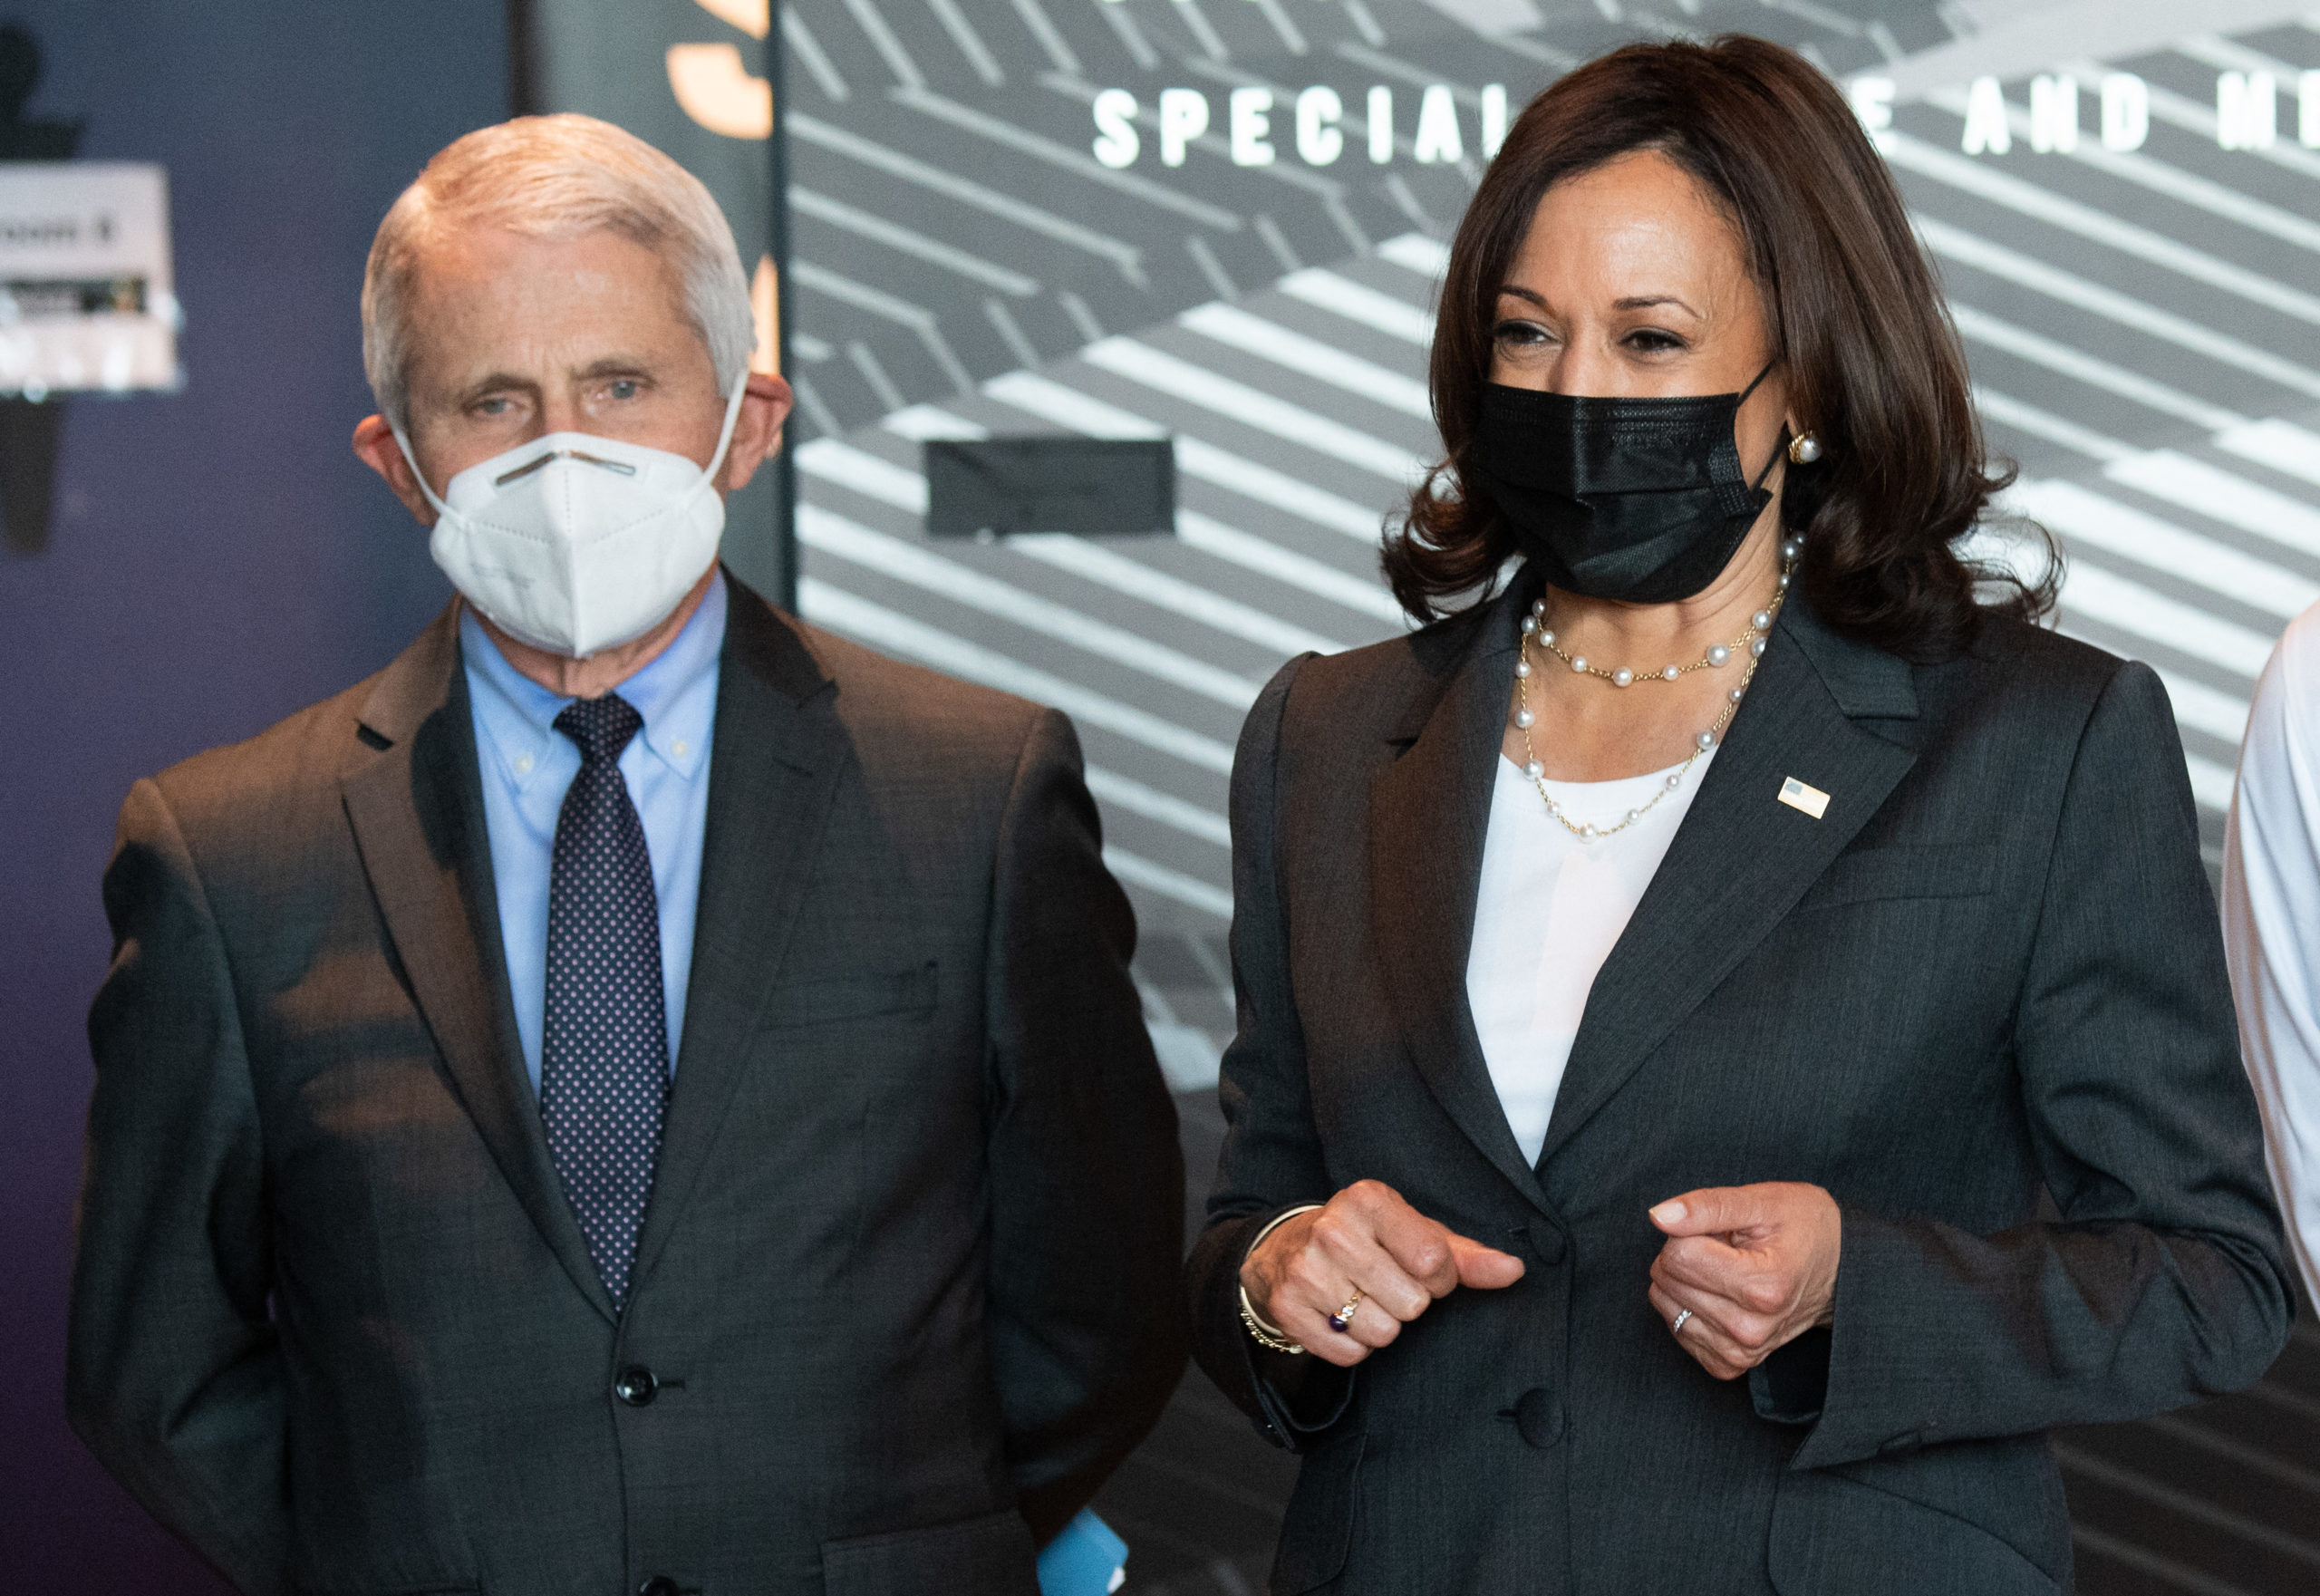 Vice President Kamala Harris tours a coronavirus vaccination site with Dr. Anthony Fauci at M&T Bank Stadium in Baltimore, Maryland on April 29. (Saul Loeb/AFP via Getty Images)